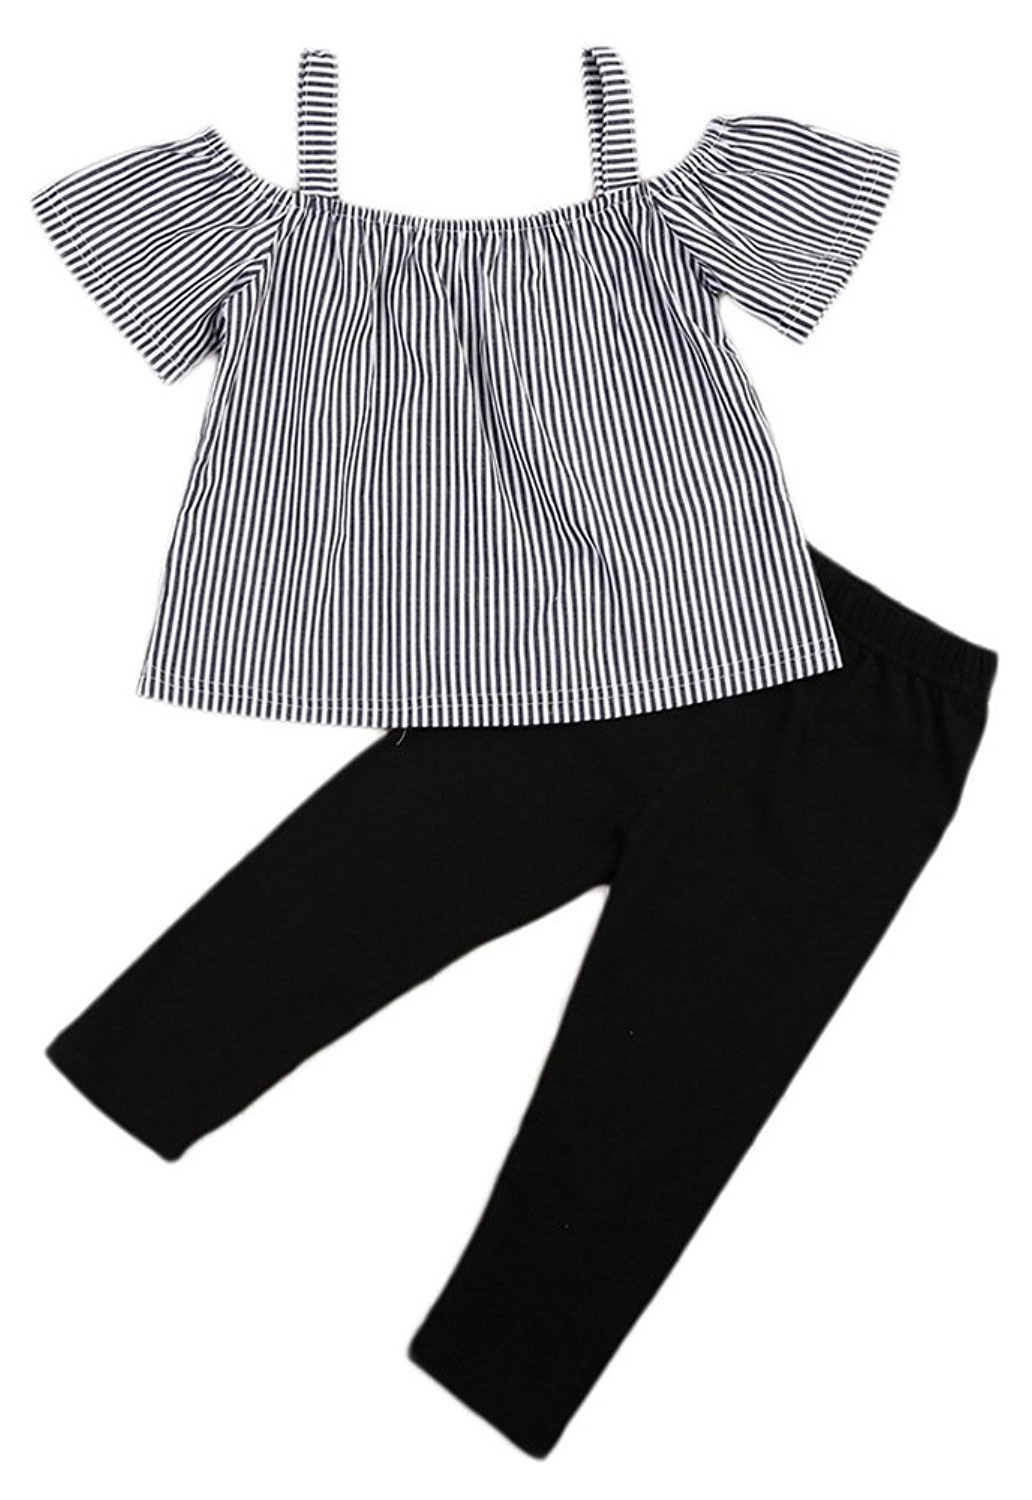 c8f5e2acb47 SALE 50% OFF + FREE SHIPPING! SHOP Our Striped Black Set for Toddler Girls